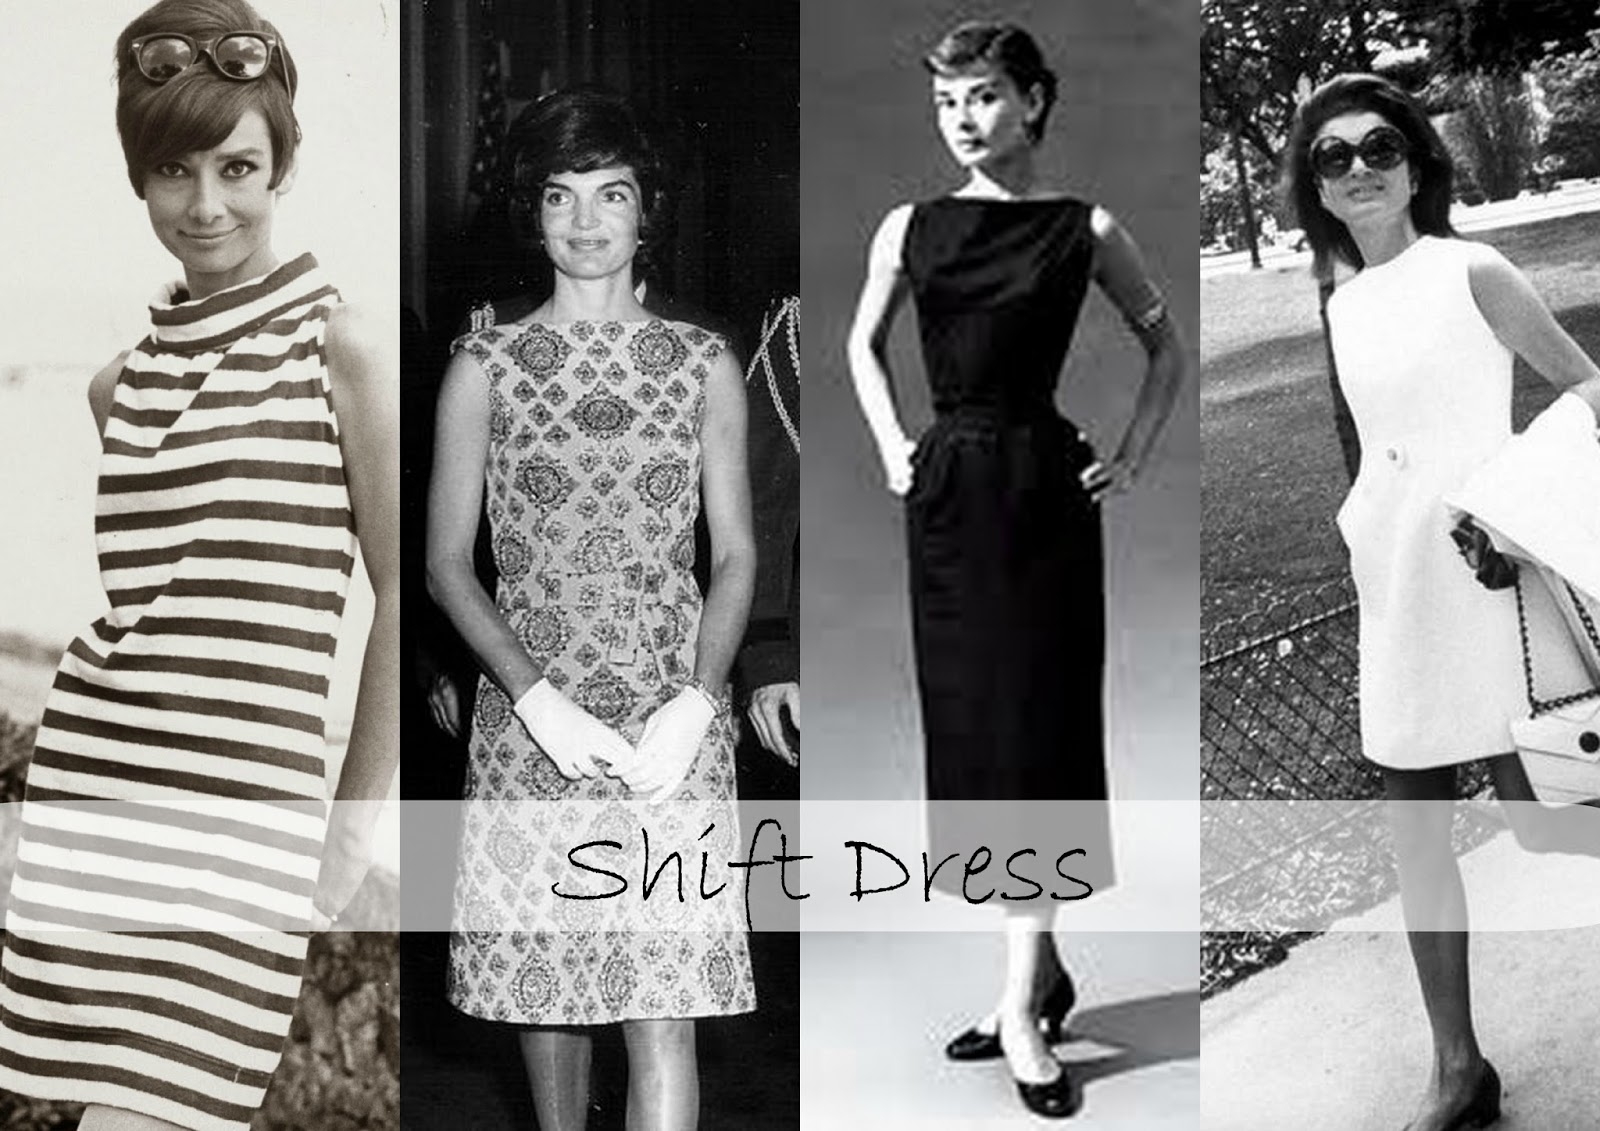 Indian style shift dresses